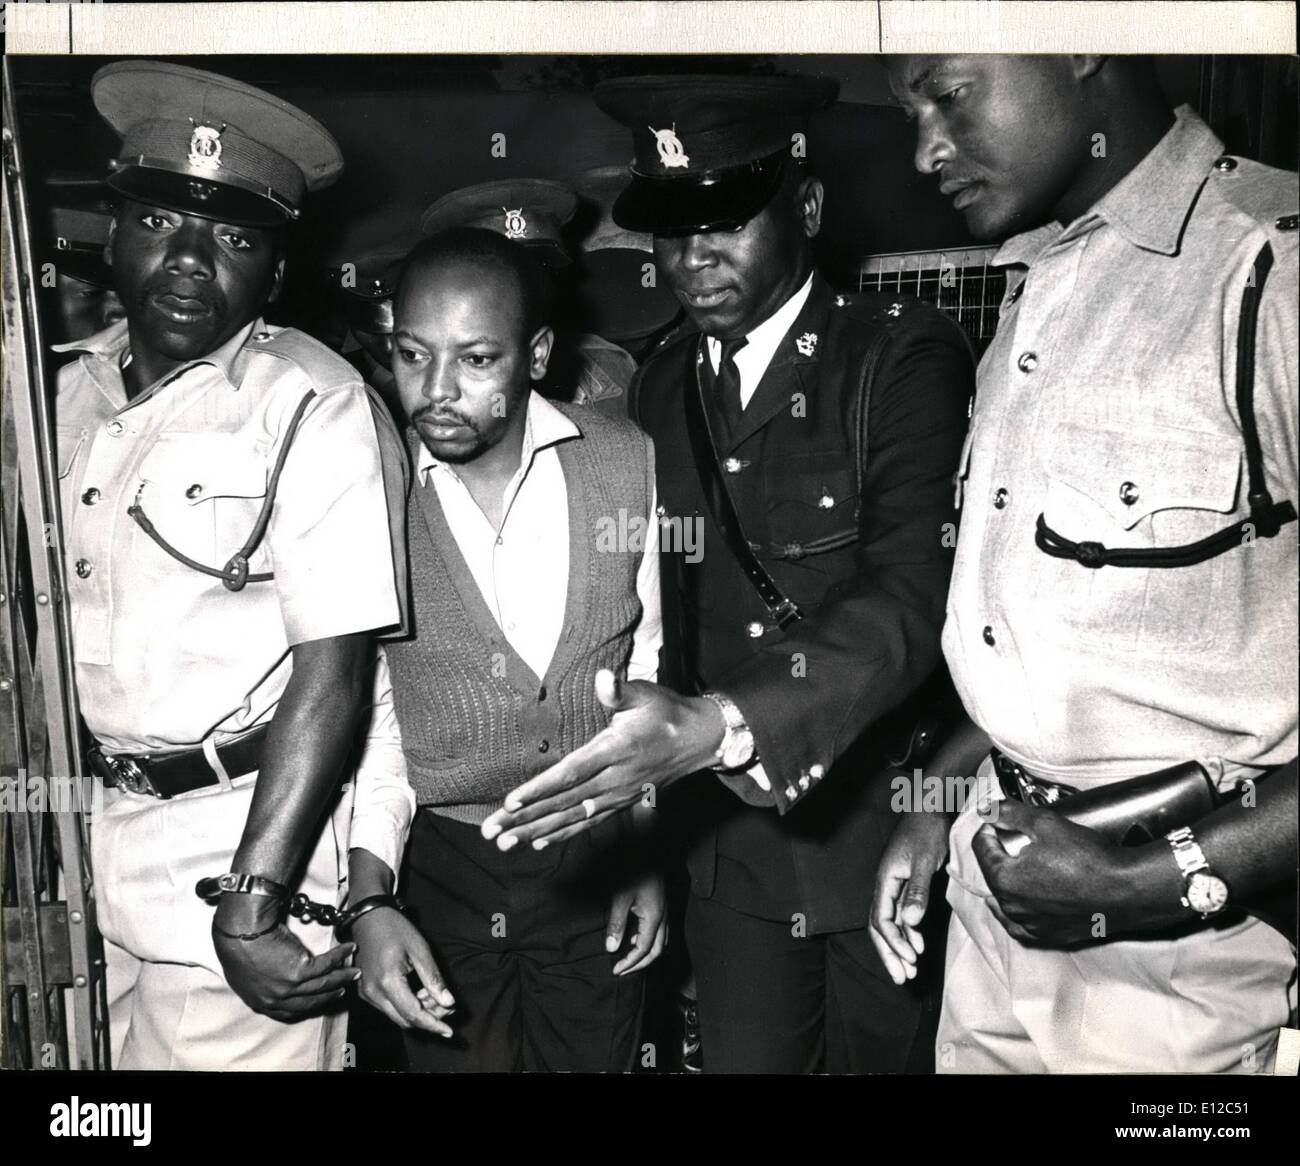 Dec. 12, 2011 - Nahashon Isaac Njenga Njorogo, the man charged for the murder of Tom Mboya on July 5th in a Nairobi main street. The preliminary inquiry lasting seven days came to an end today in the Nairobi court. The trial will now go to the High Courts. During the preliminary inquiry 64 witnesses were brought to court. The picture shows Njoroge being escorted to the court in Nairobi today (Monday August 18th) - Stock Image